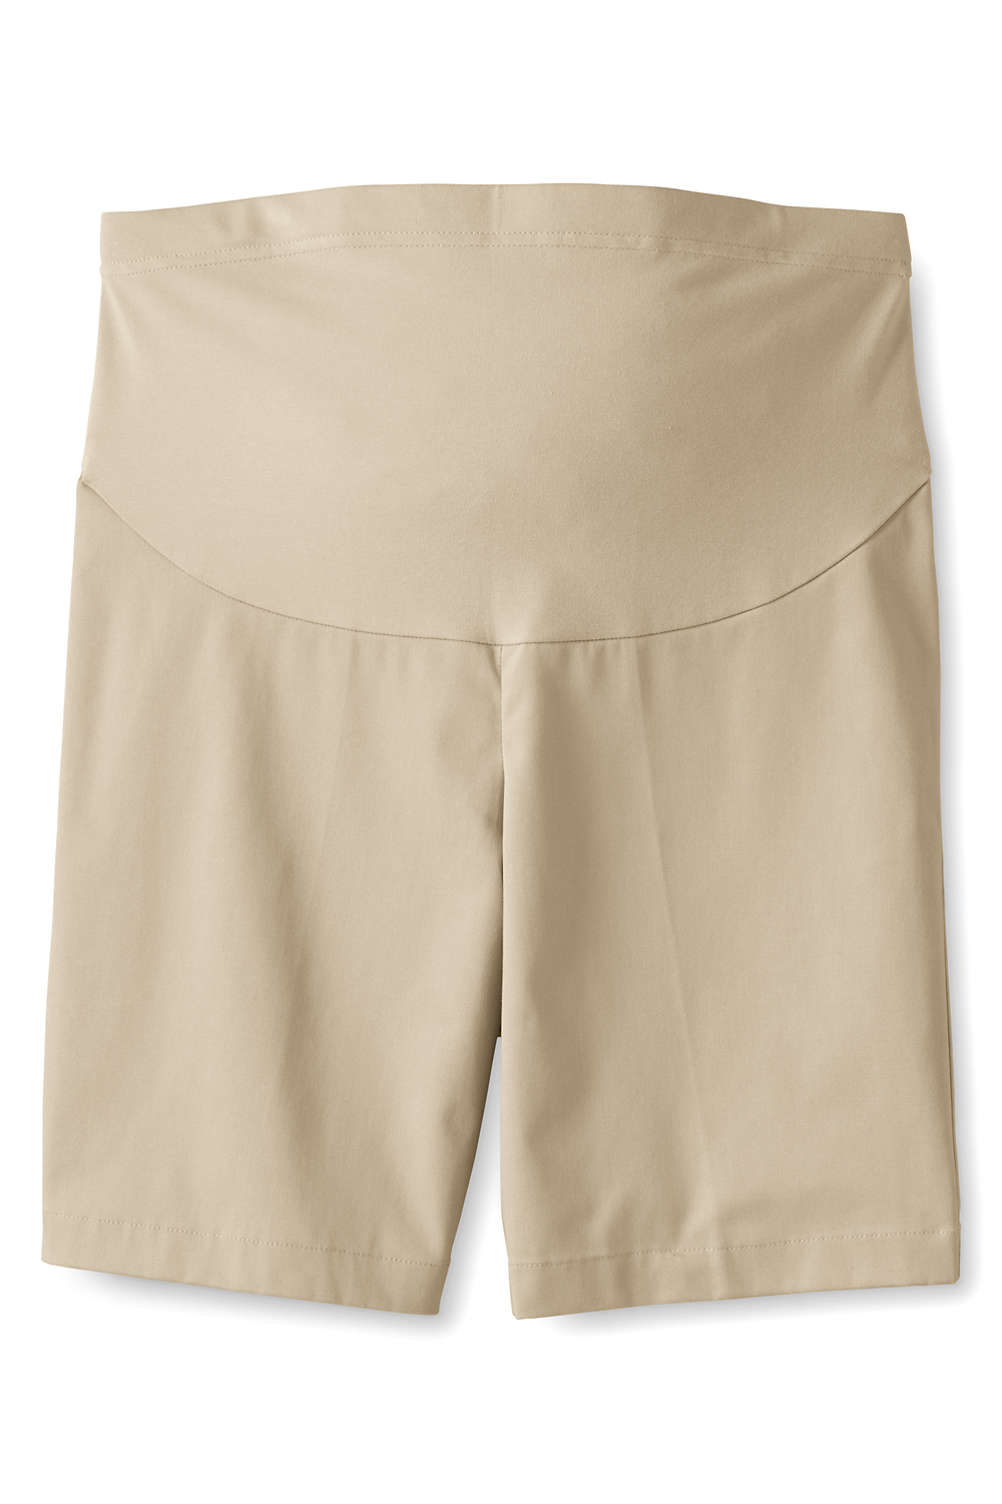 85b3bc4778 Women s Maternity Straight Fit Plain Front Chino Shorts from Lands  End